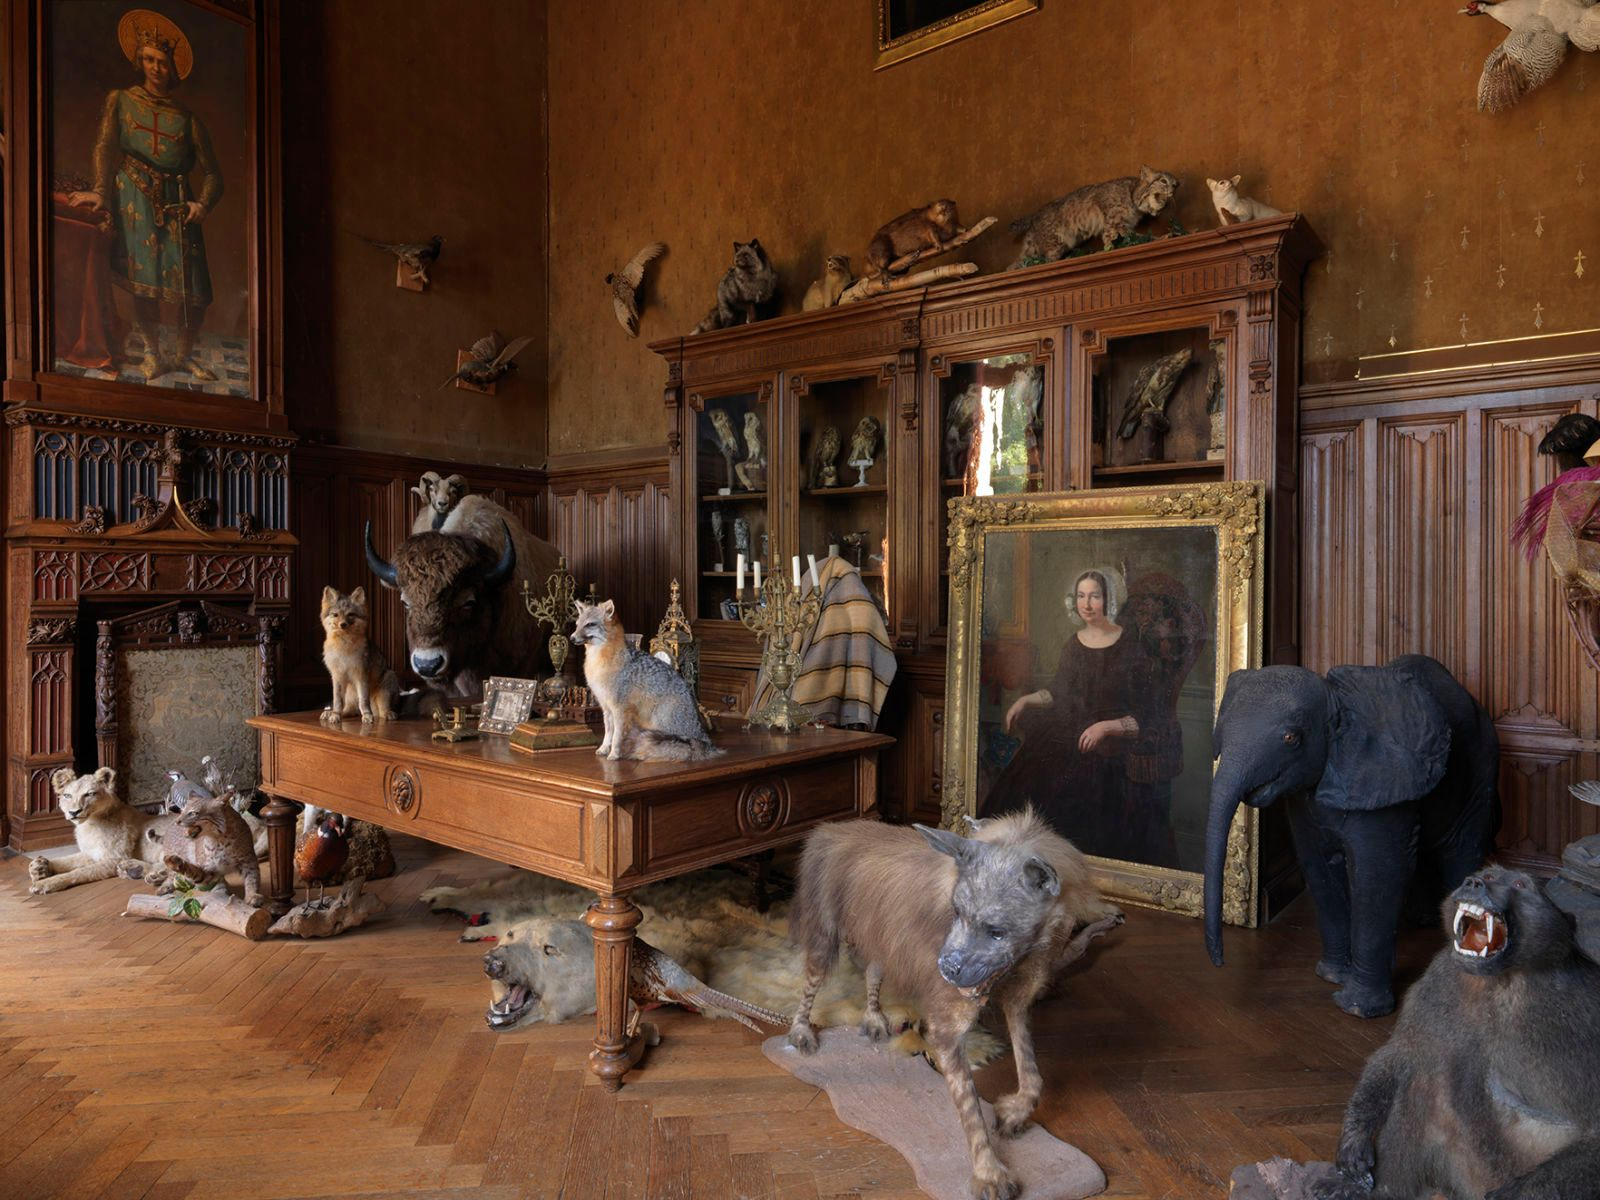 CHALLAIN-LA-POTHERIE TAXIDERMY SALON